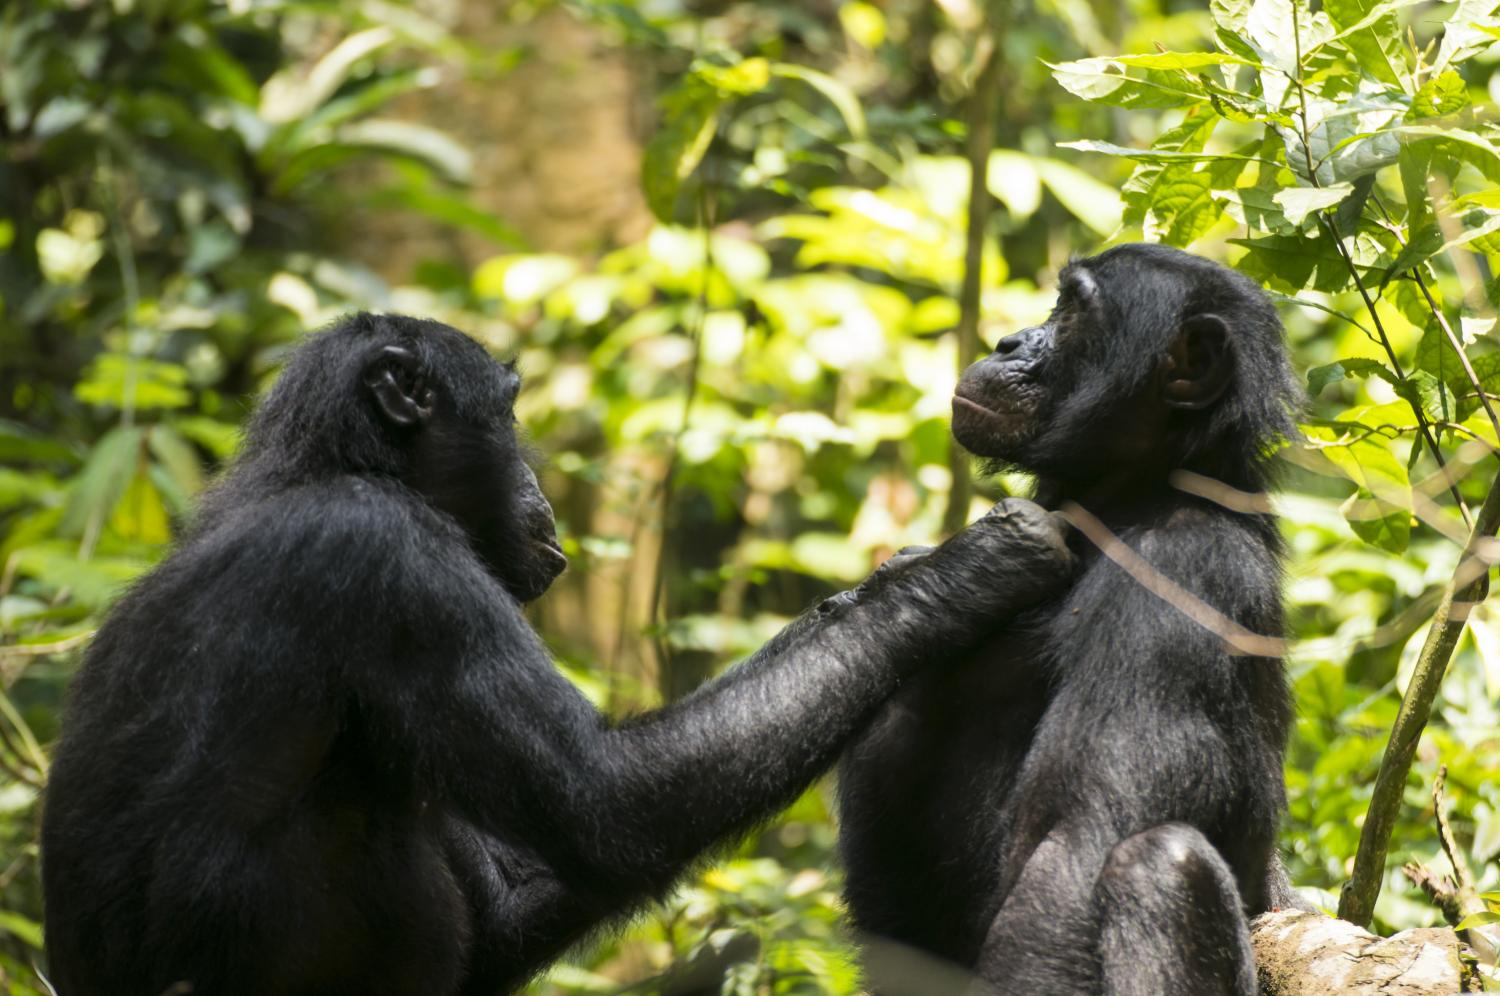 Just like us: Bonobos also get far-sighted